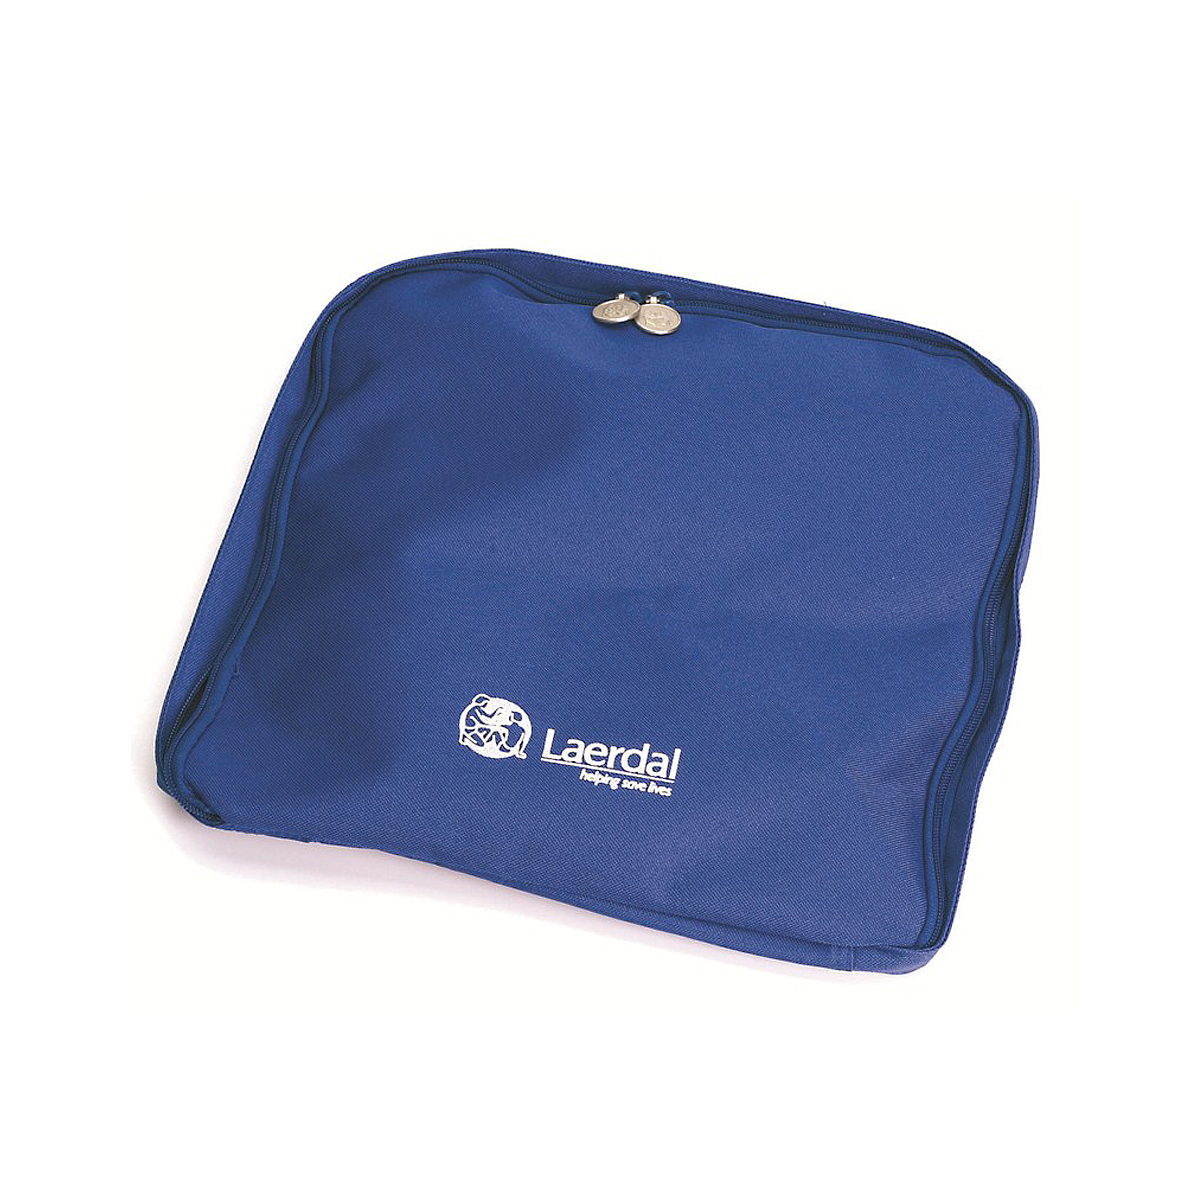 Full Cover Carry Bag for Leardal Suction Unit